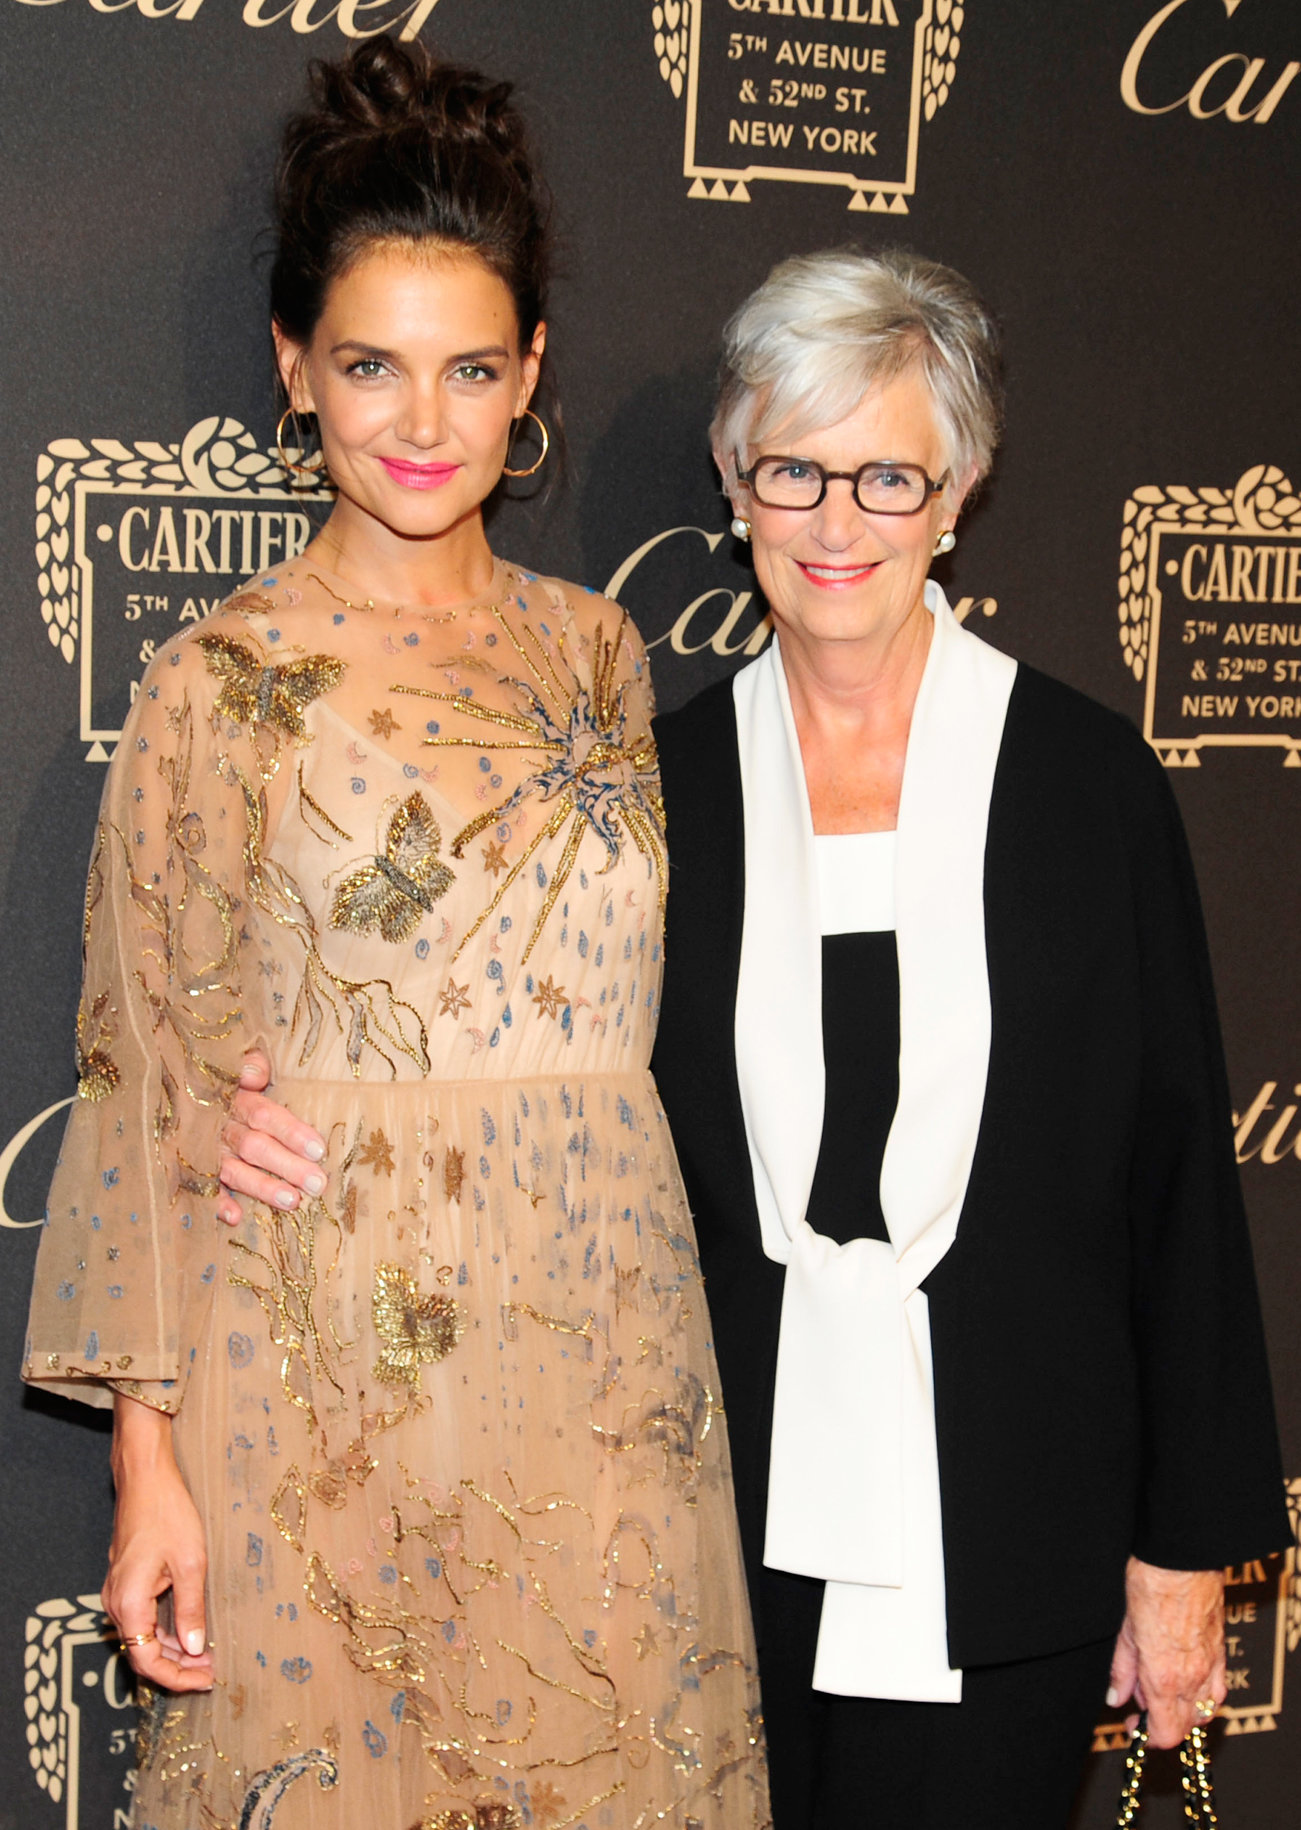 NEW YORK, NY - SEMPTEMBER 7: (L-R) Katie Holmes and Kathleen A. Stothers-Holmes attend the Cartier Fetes the Grand Opening of The Fifth Avenue Mansion at Cartier Mansion on SEPTEMBER 7, 2016 in New York City. (Photo by Paul Bruinooge/Patrick McMullan via